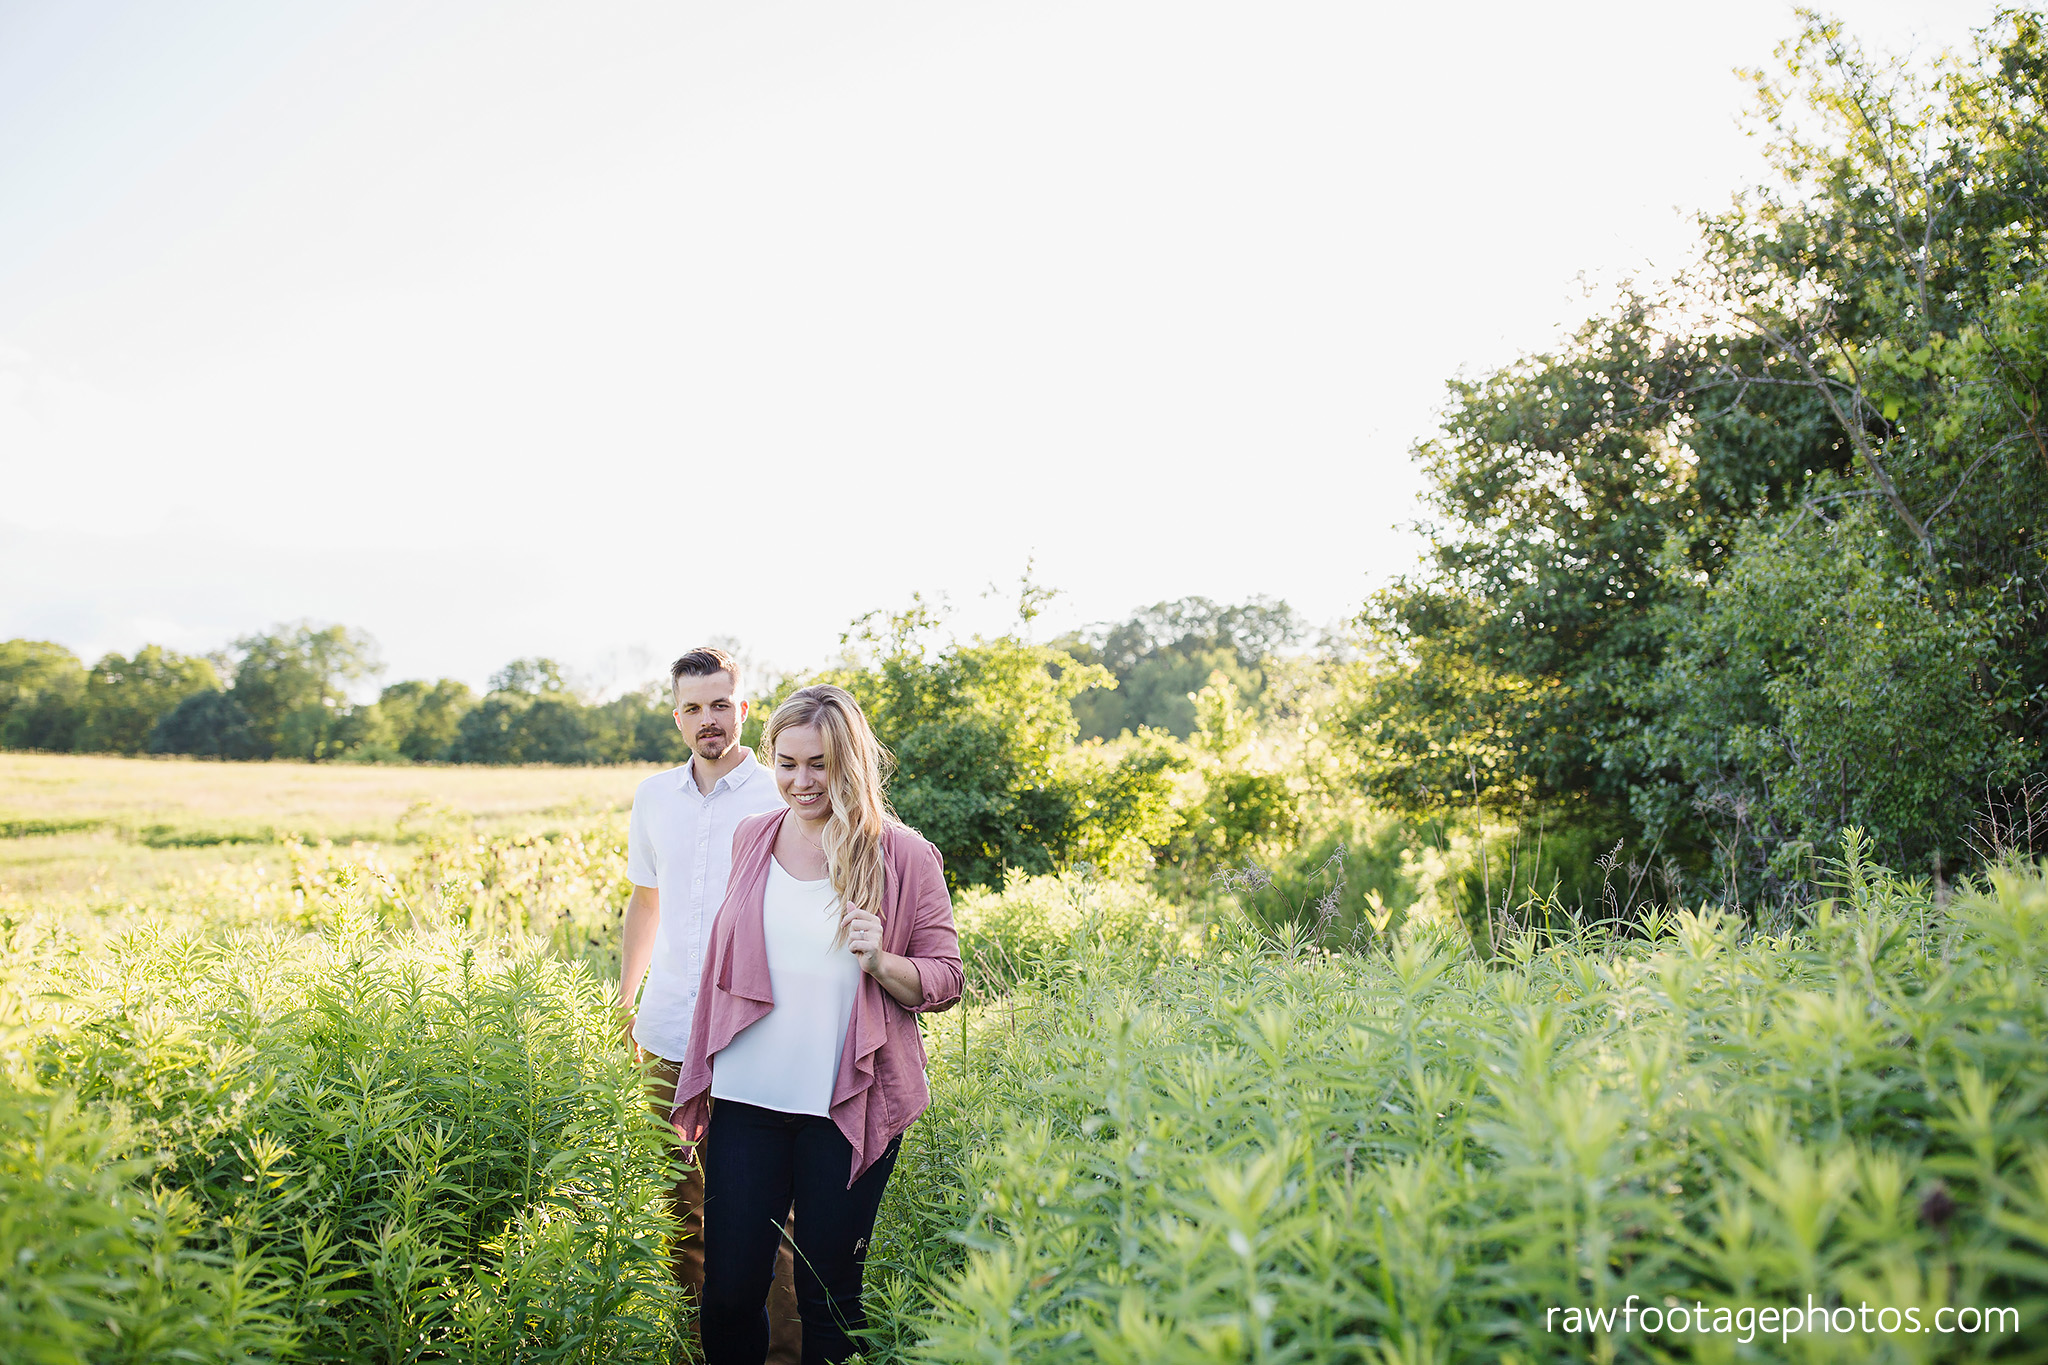 london_ontario_wedding_photographer-raw_footage_photography-mentoring-workshop-golden_hour-engagement_session010.jpg